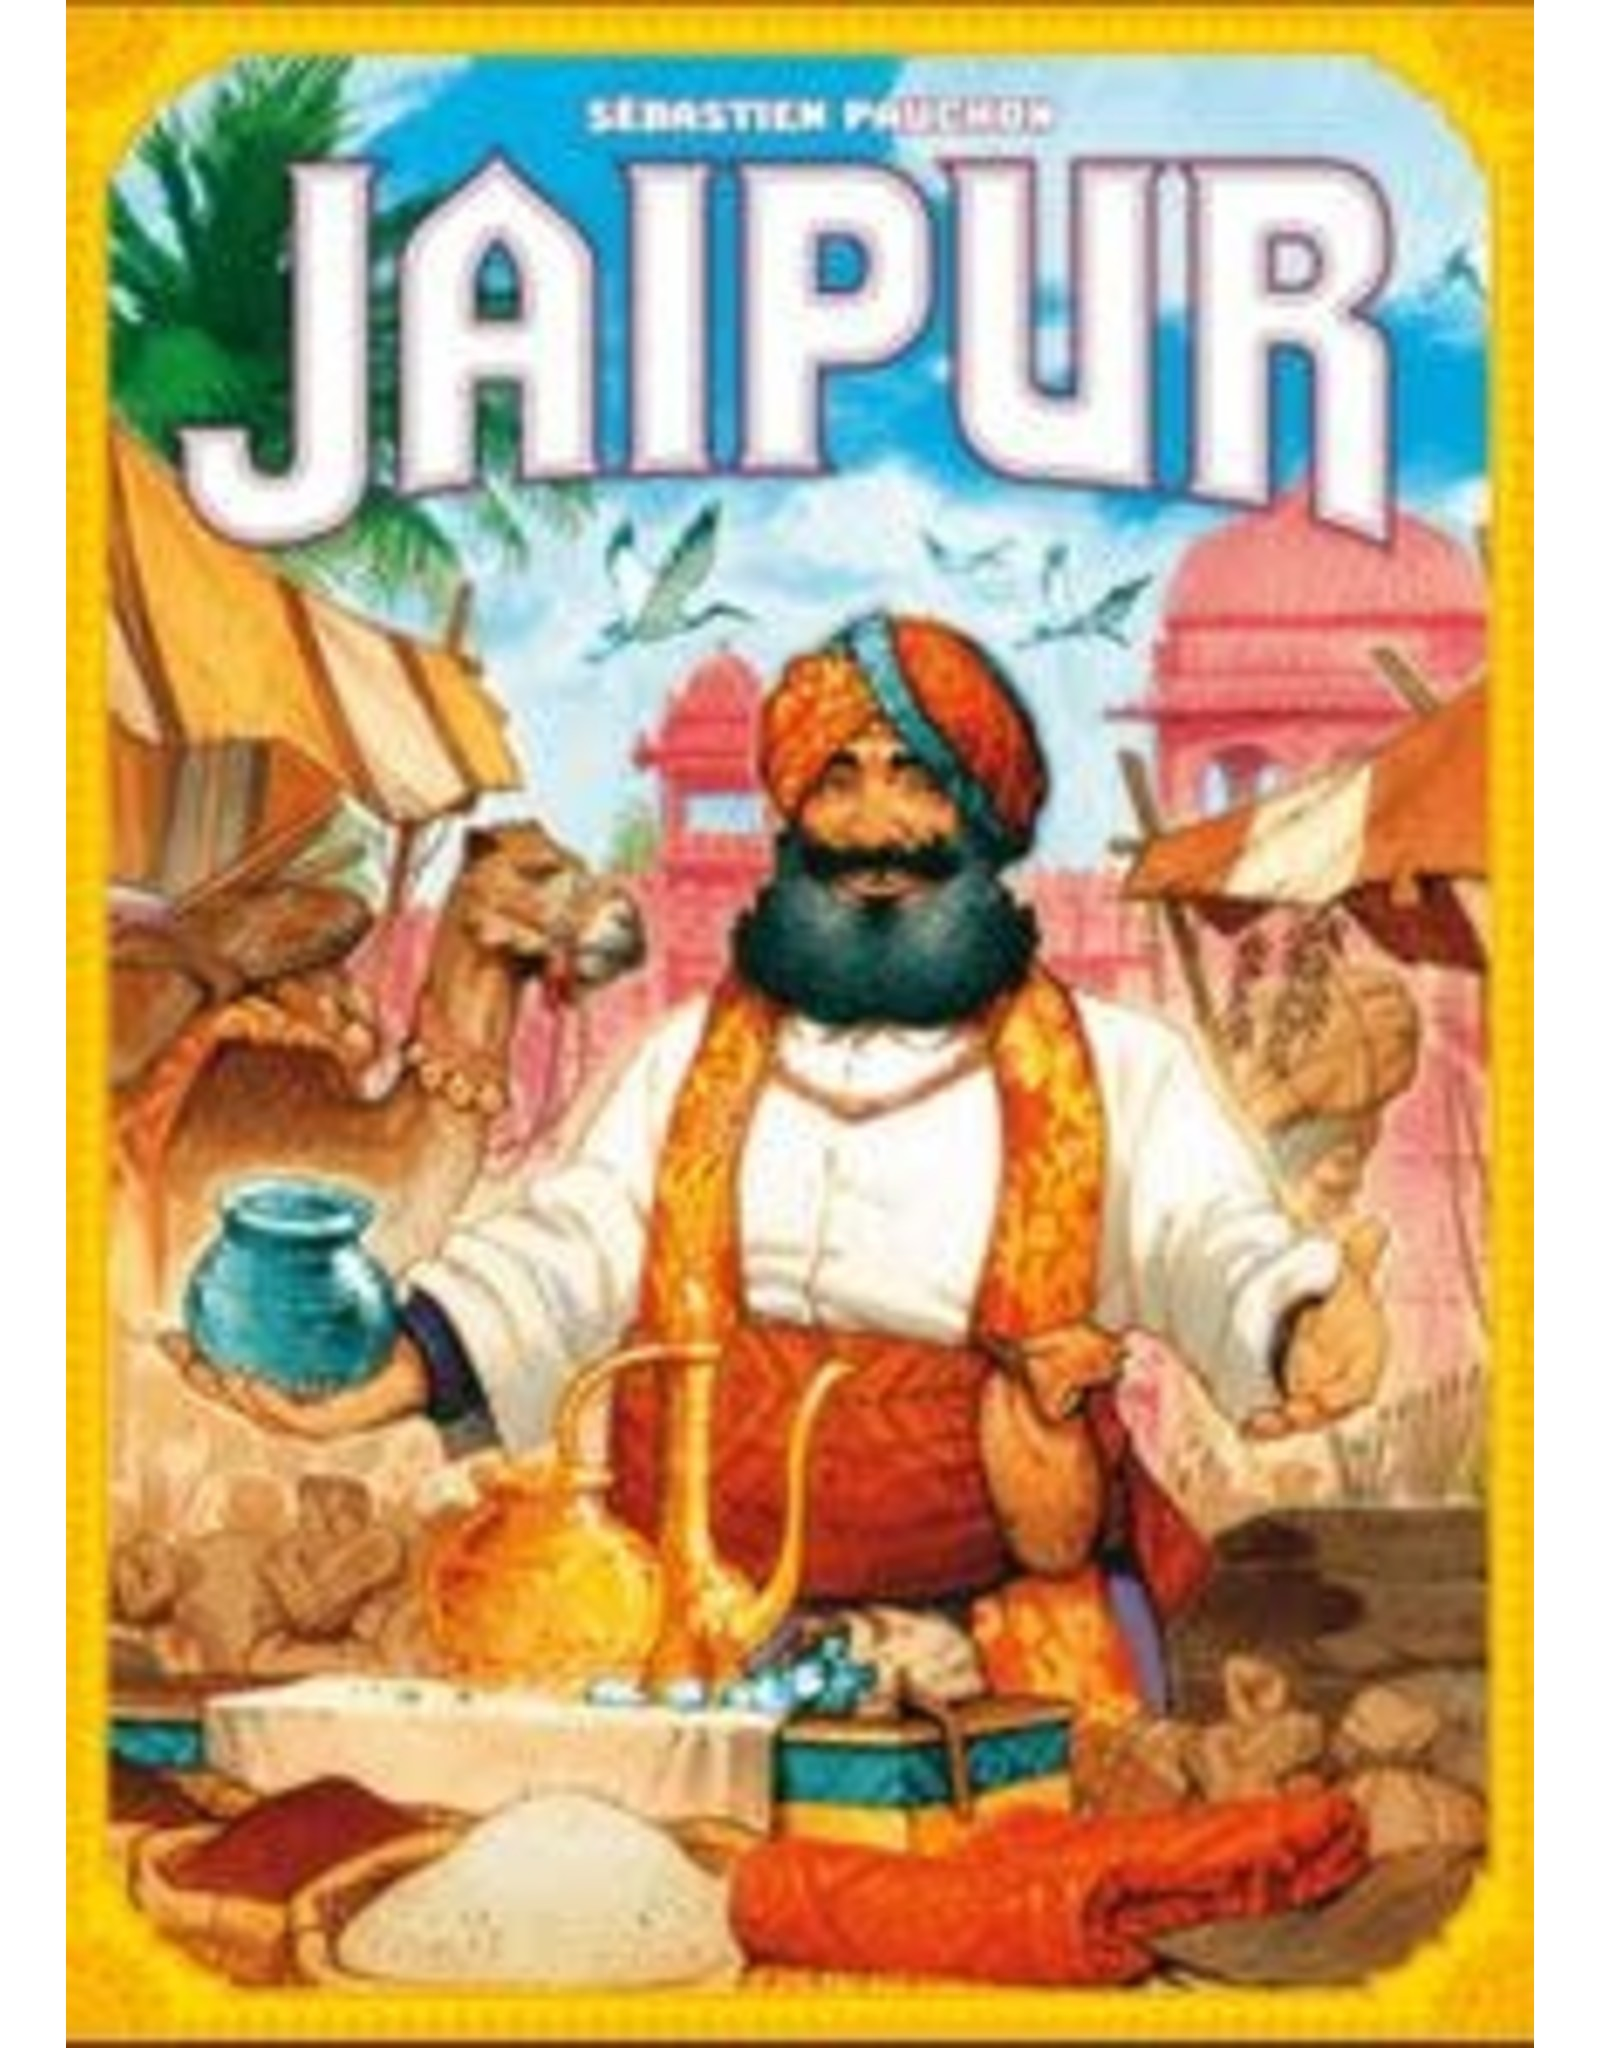 Jaipur Board Game (New Edition)